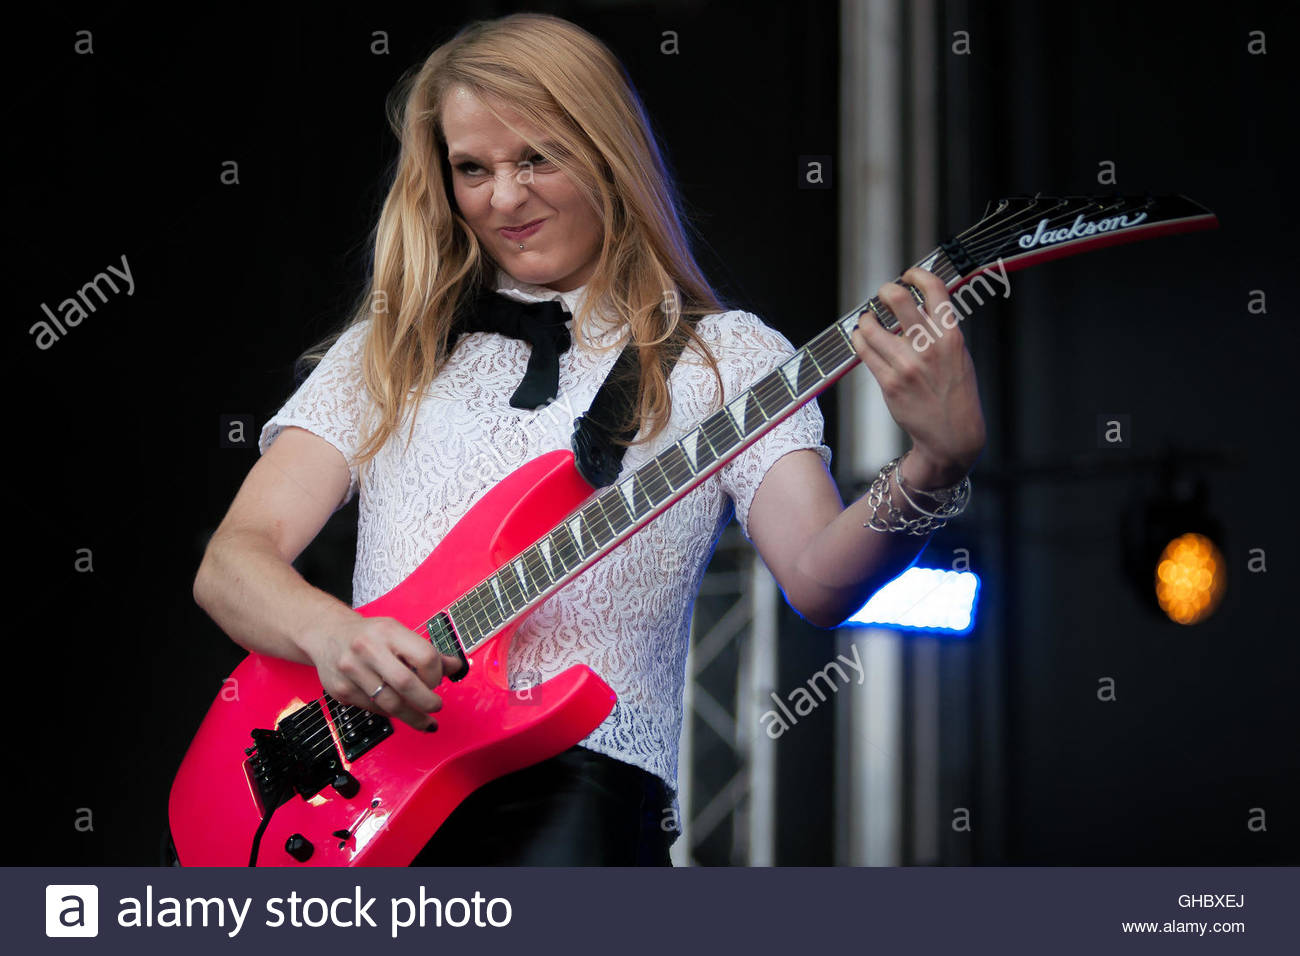 BUZZ - LE GROUPE performing live (guitar player Elise Masliah) - Stock Image